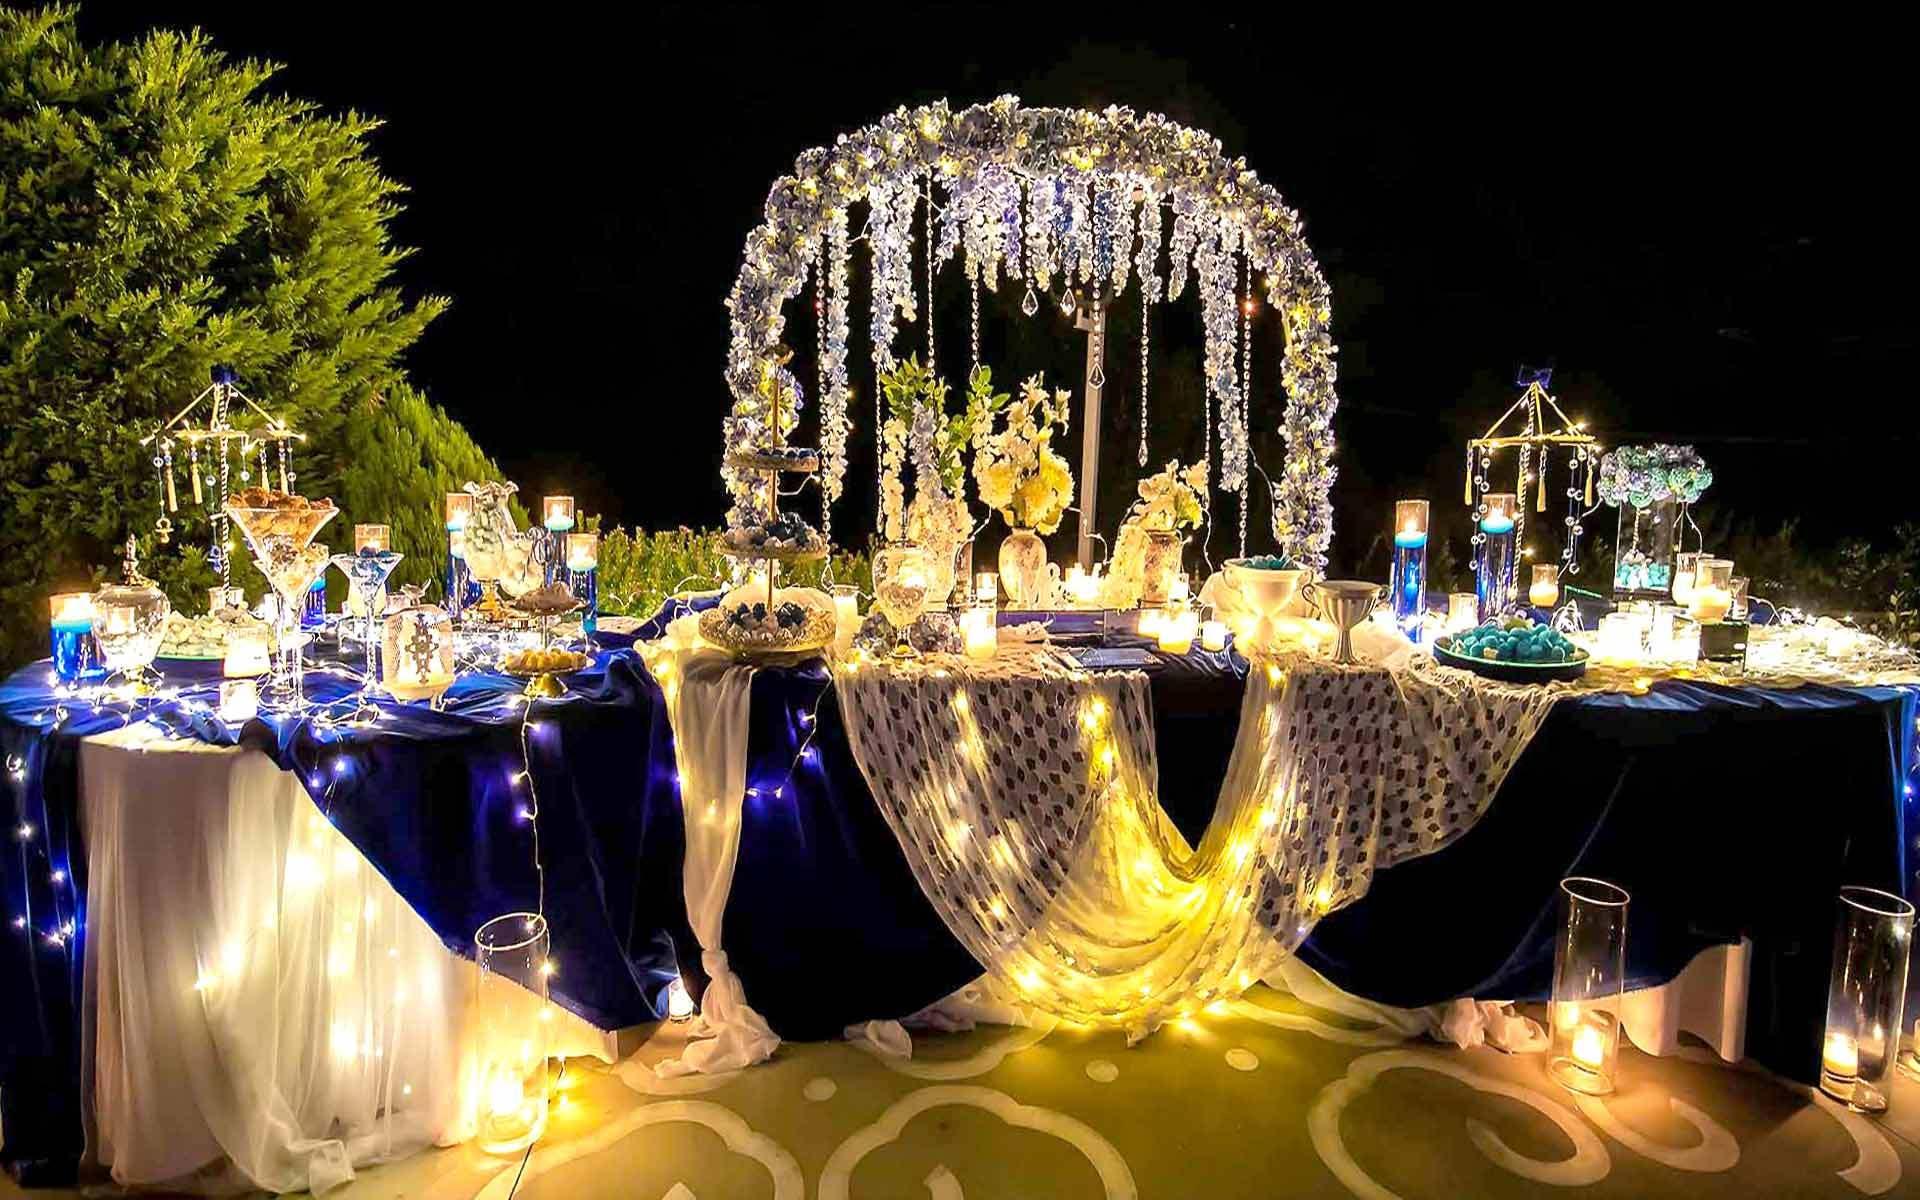 Incredible-Destination-Wedding-Guest-Book-table-with-stunning-decor-in-blue-and-white